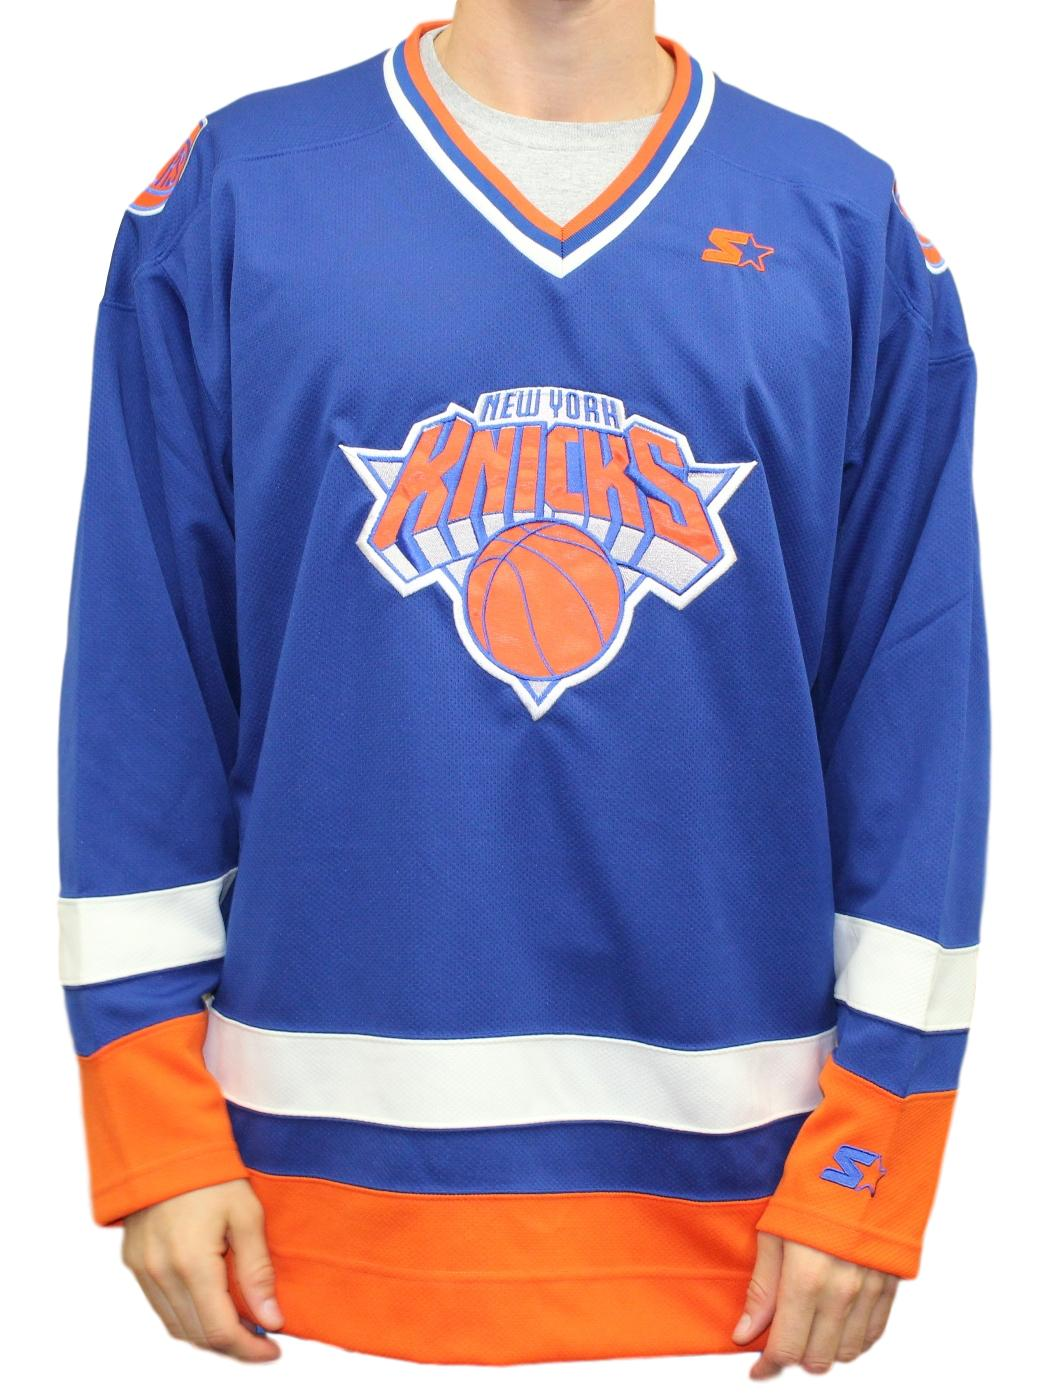 732c17c3e New York Knicks Starter NBA Men s